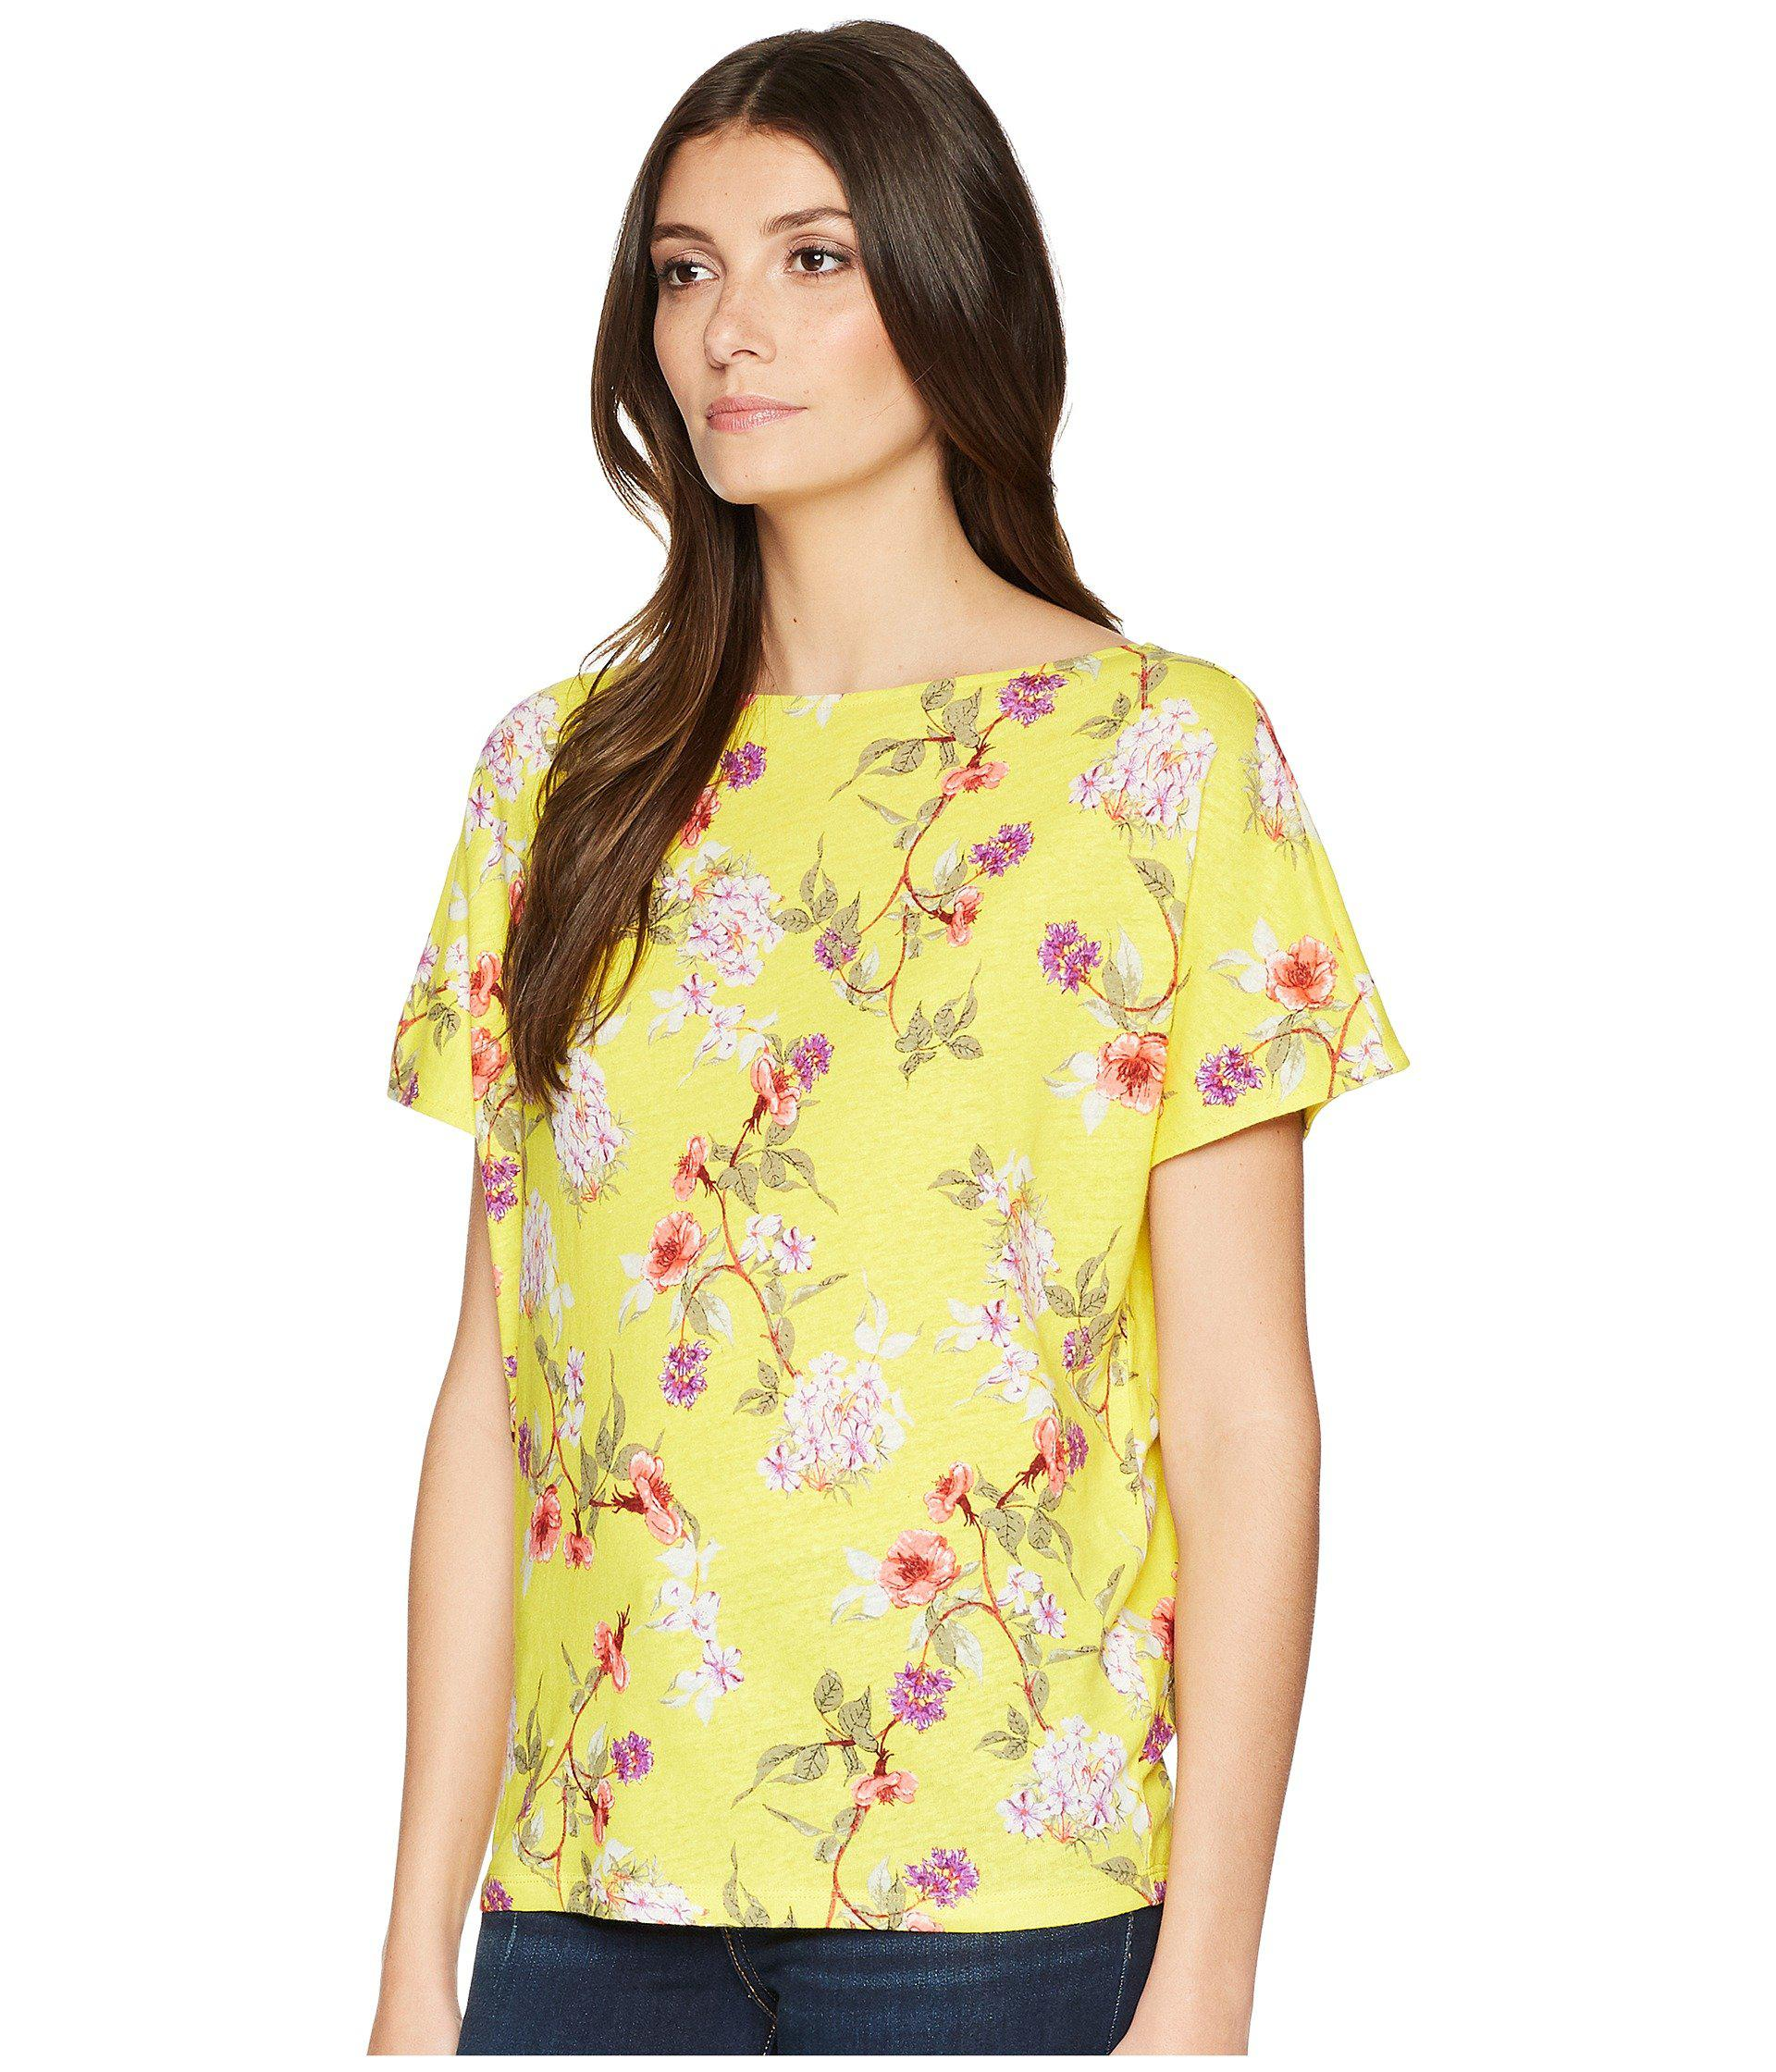 121da778176 Lyst - Lauren by Ralph Lauren Floral Linen-blend Top in Yellow - Save 42%